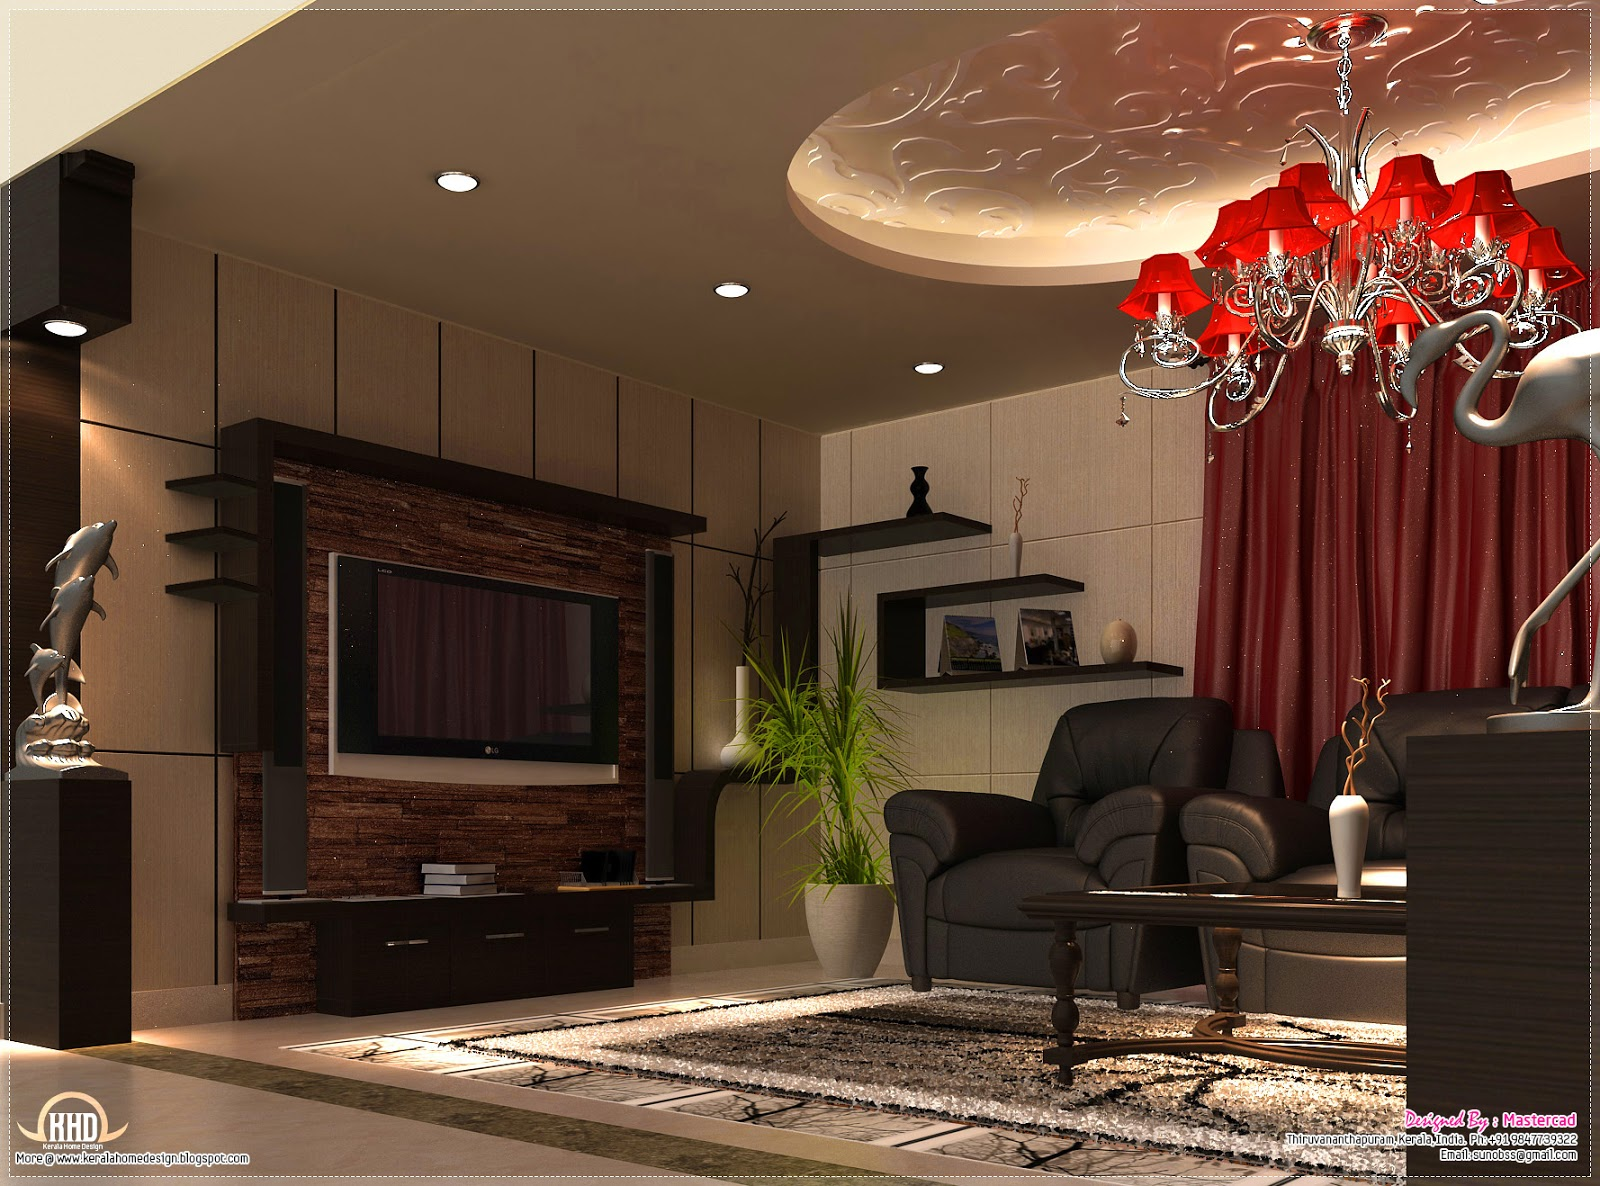 Interior design ideas kerala home design and floor plans New ideas in home design